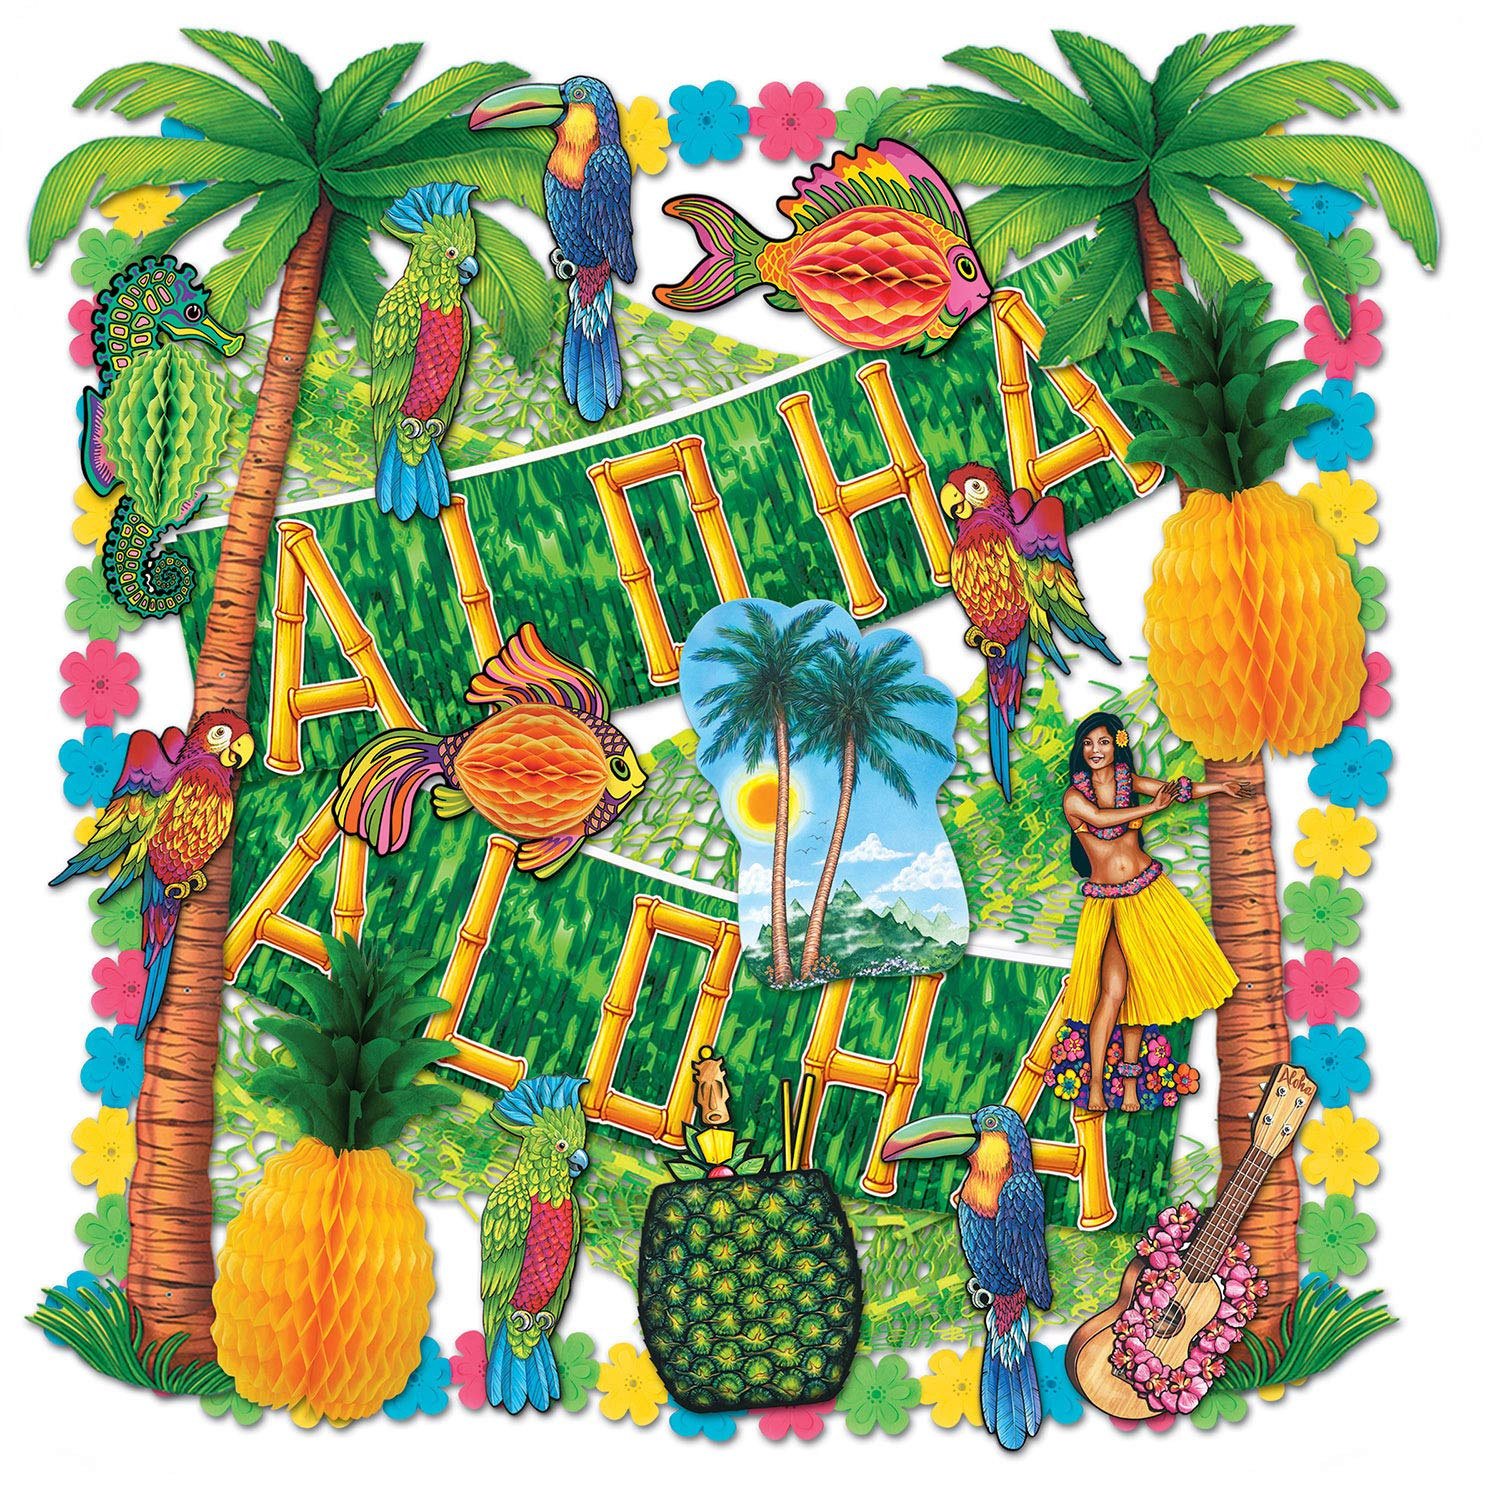 Beistle 55605 27-Piece Luau Decorating Kit by Beistle